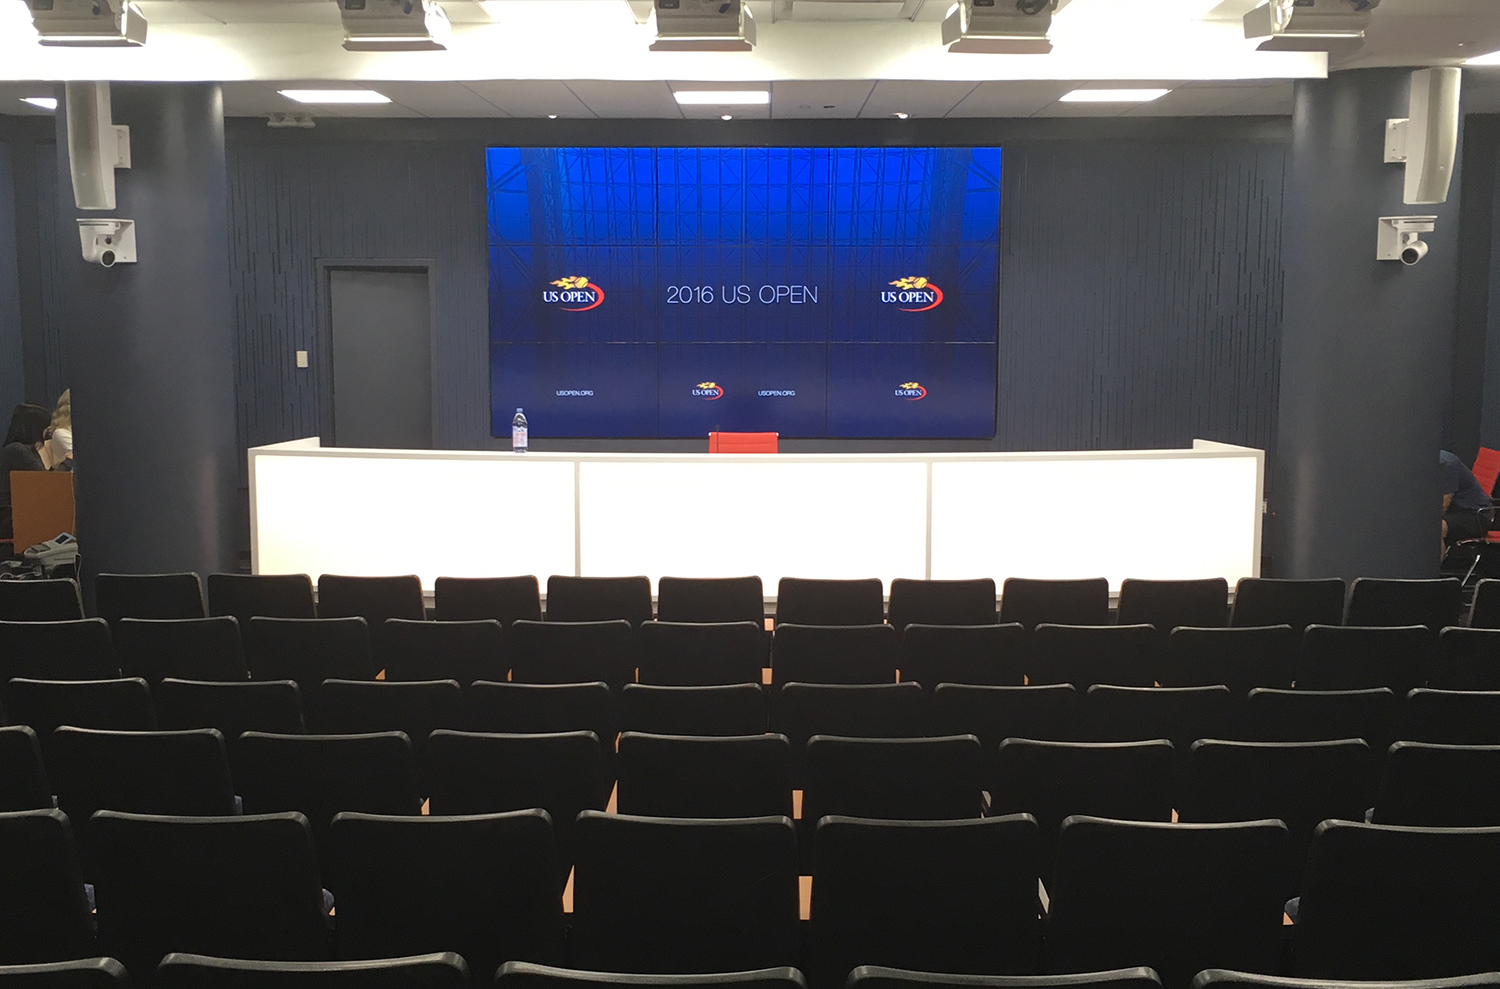 For the first time, ESPN is producing a live streaming press conference feed throughout the US Open.